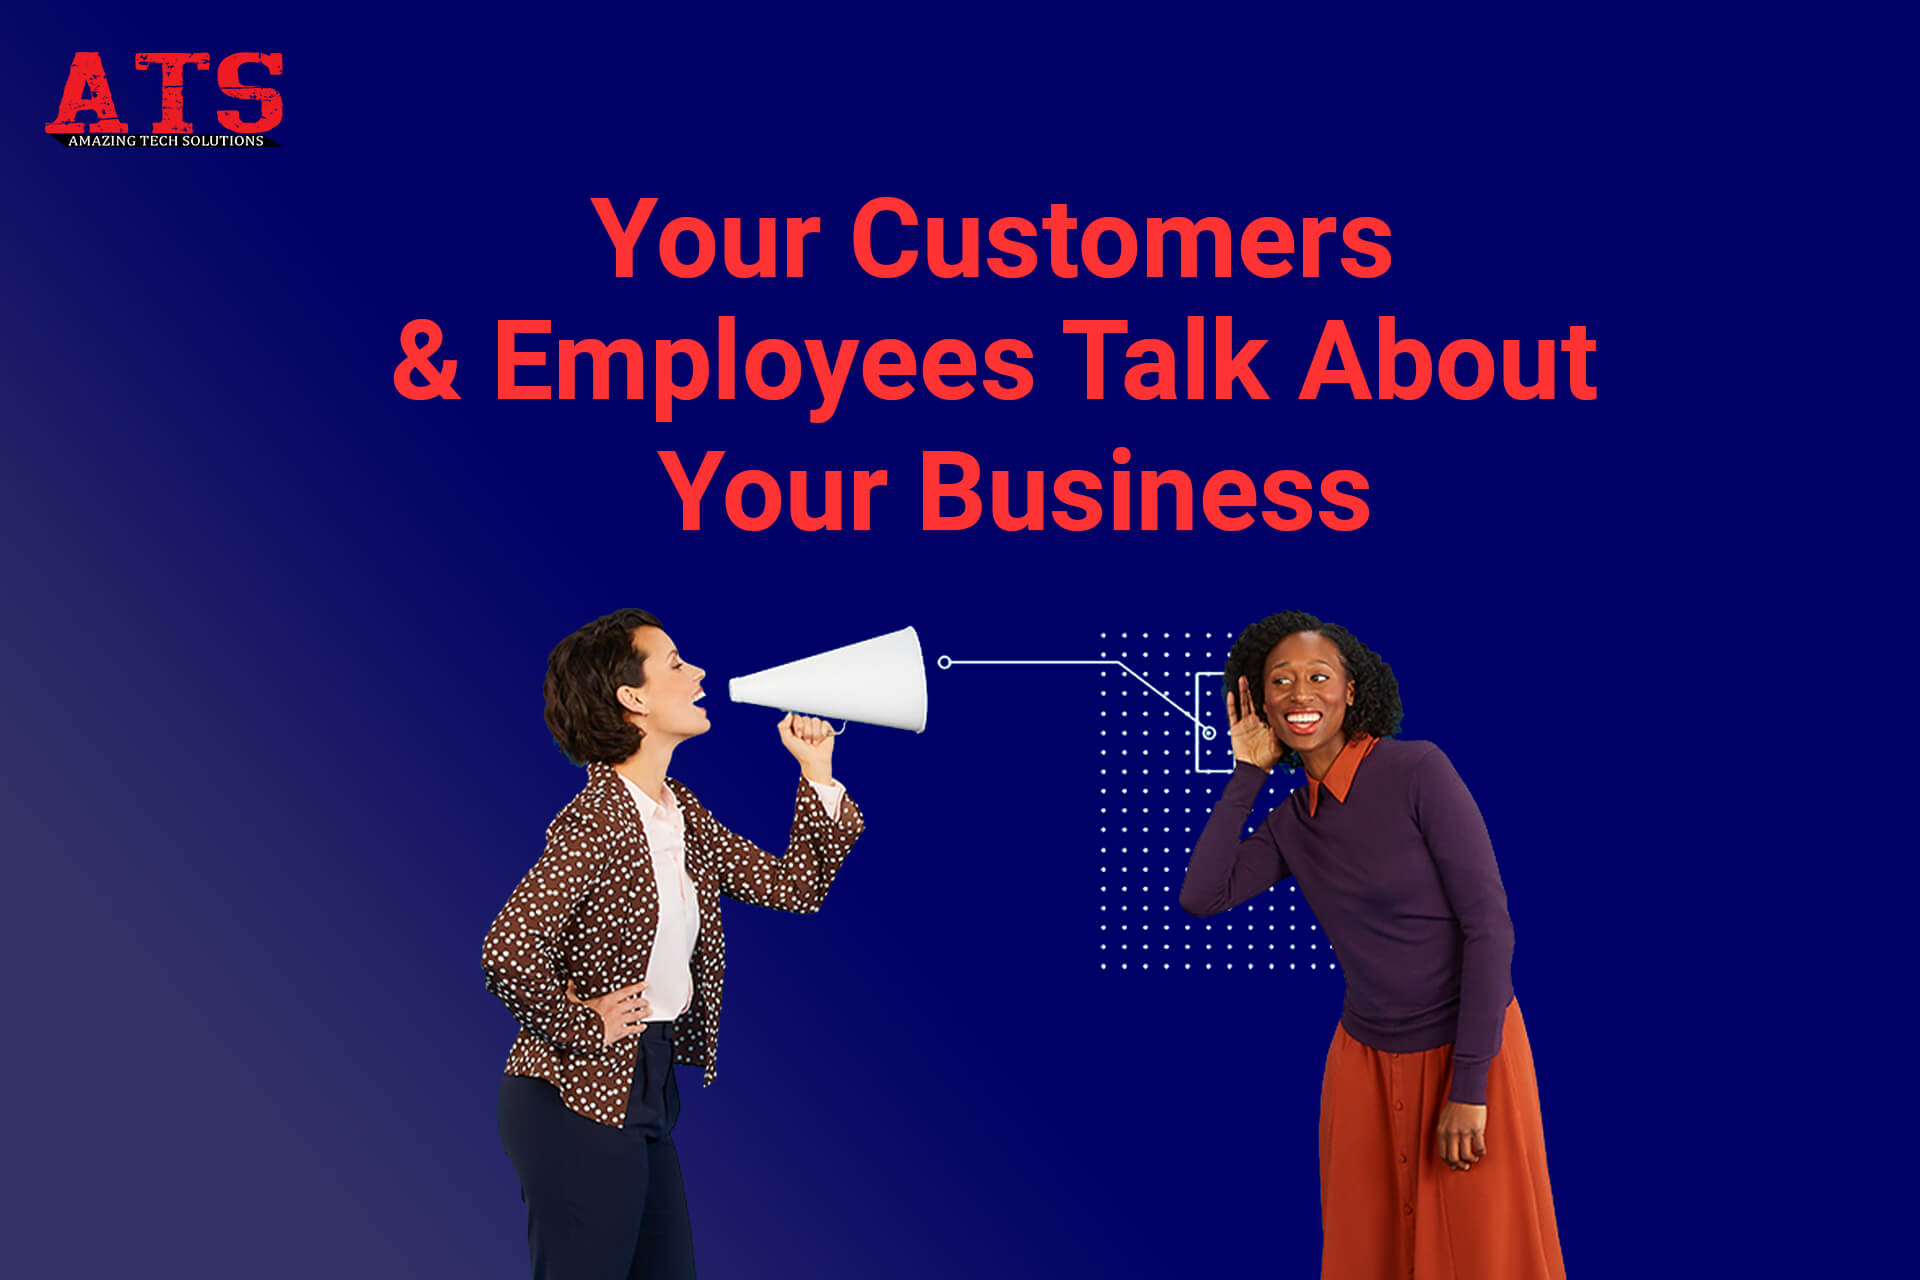 Your Customers & Employees Talk About Your